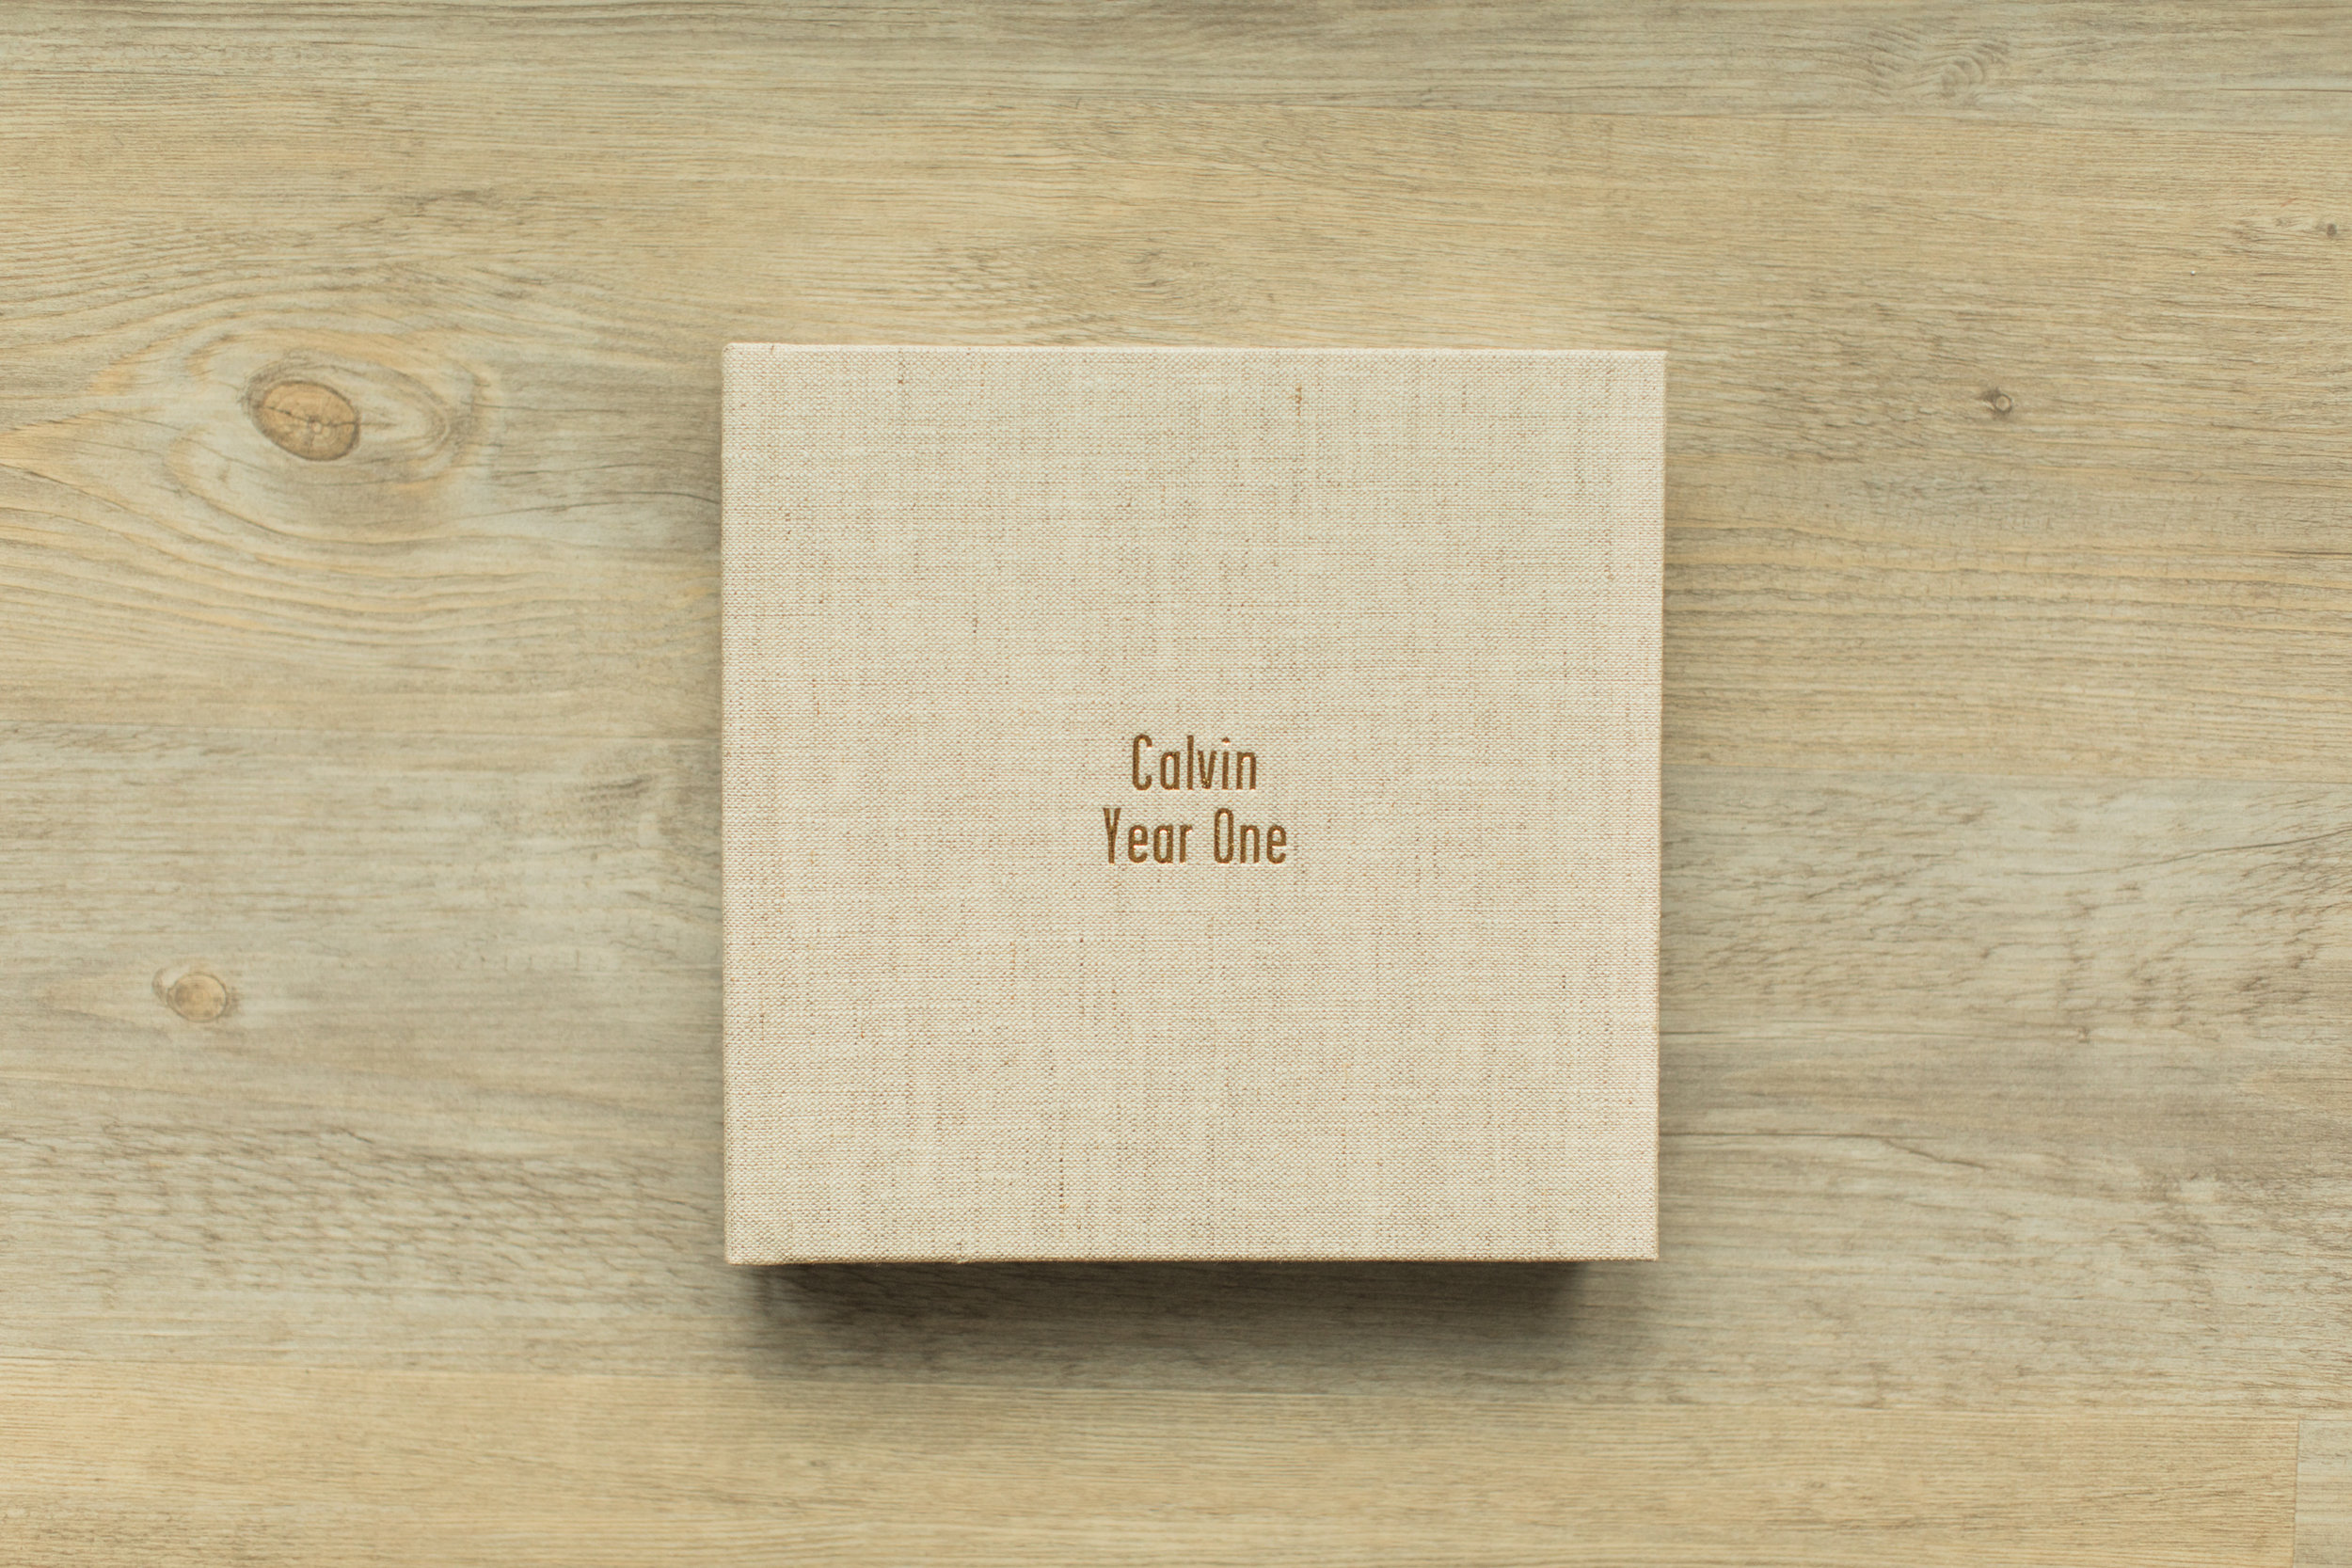 A baby photo album sits on a wooden table.